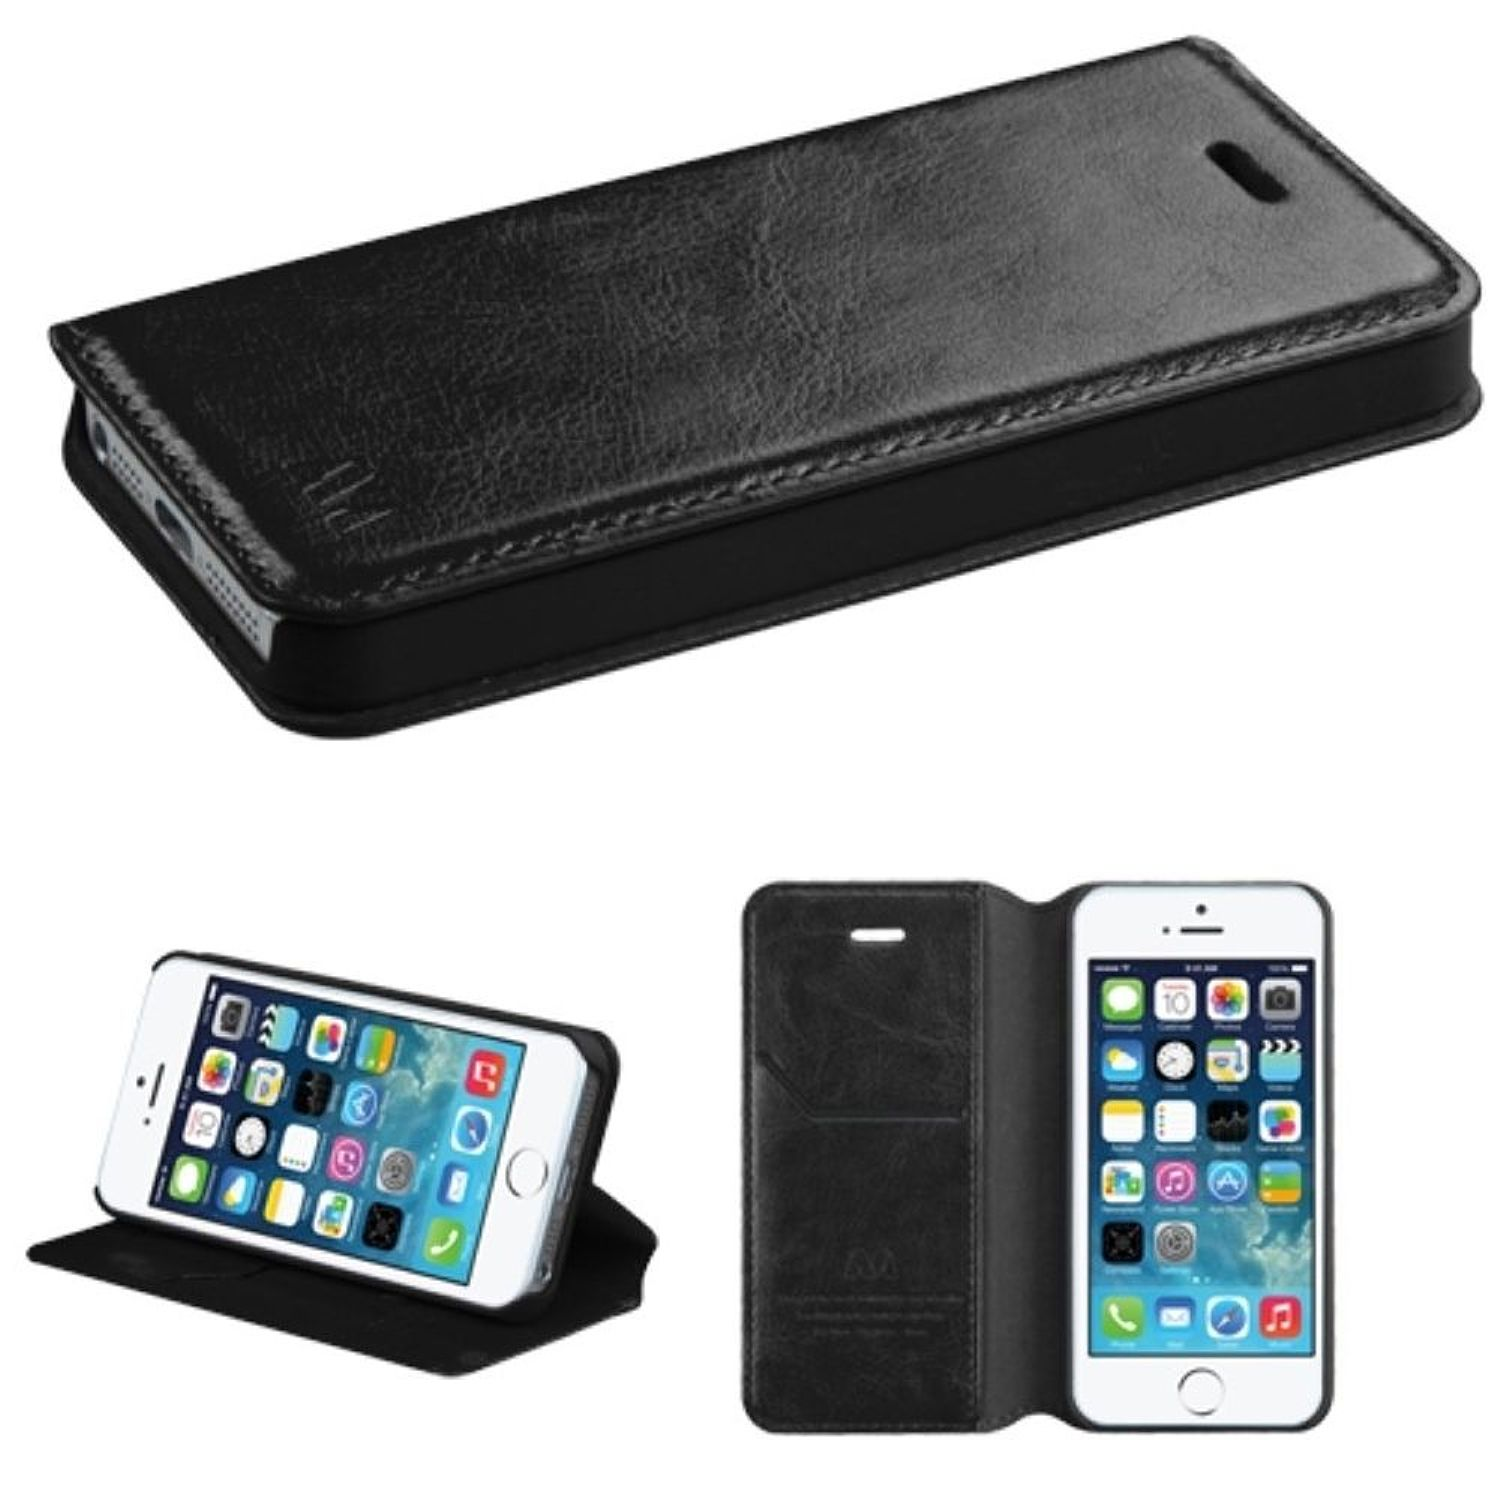 iPhone SE Case Wallet by Insten Black MyJacket Wallet Case with Tray 561 For APPLE iPhone SE 5S 5